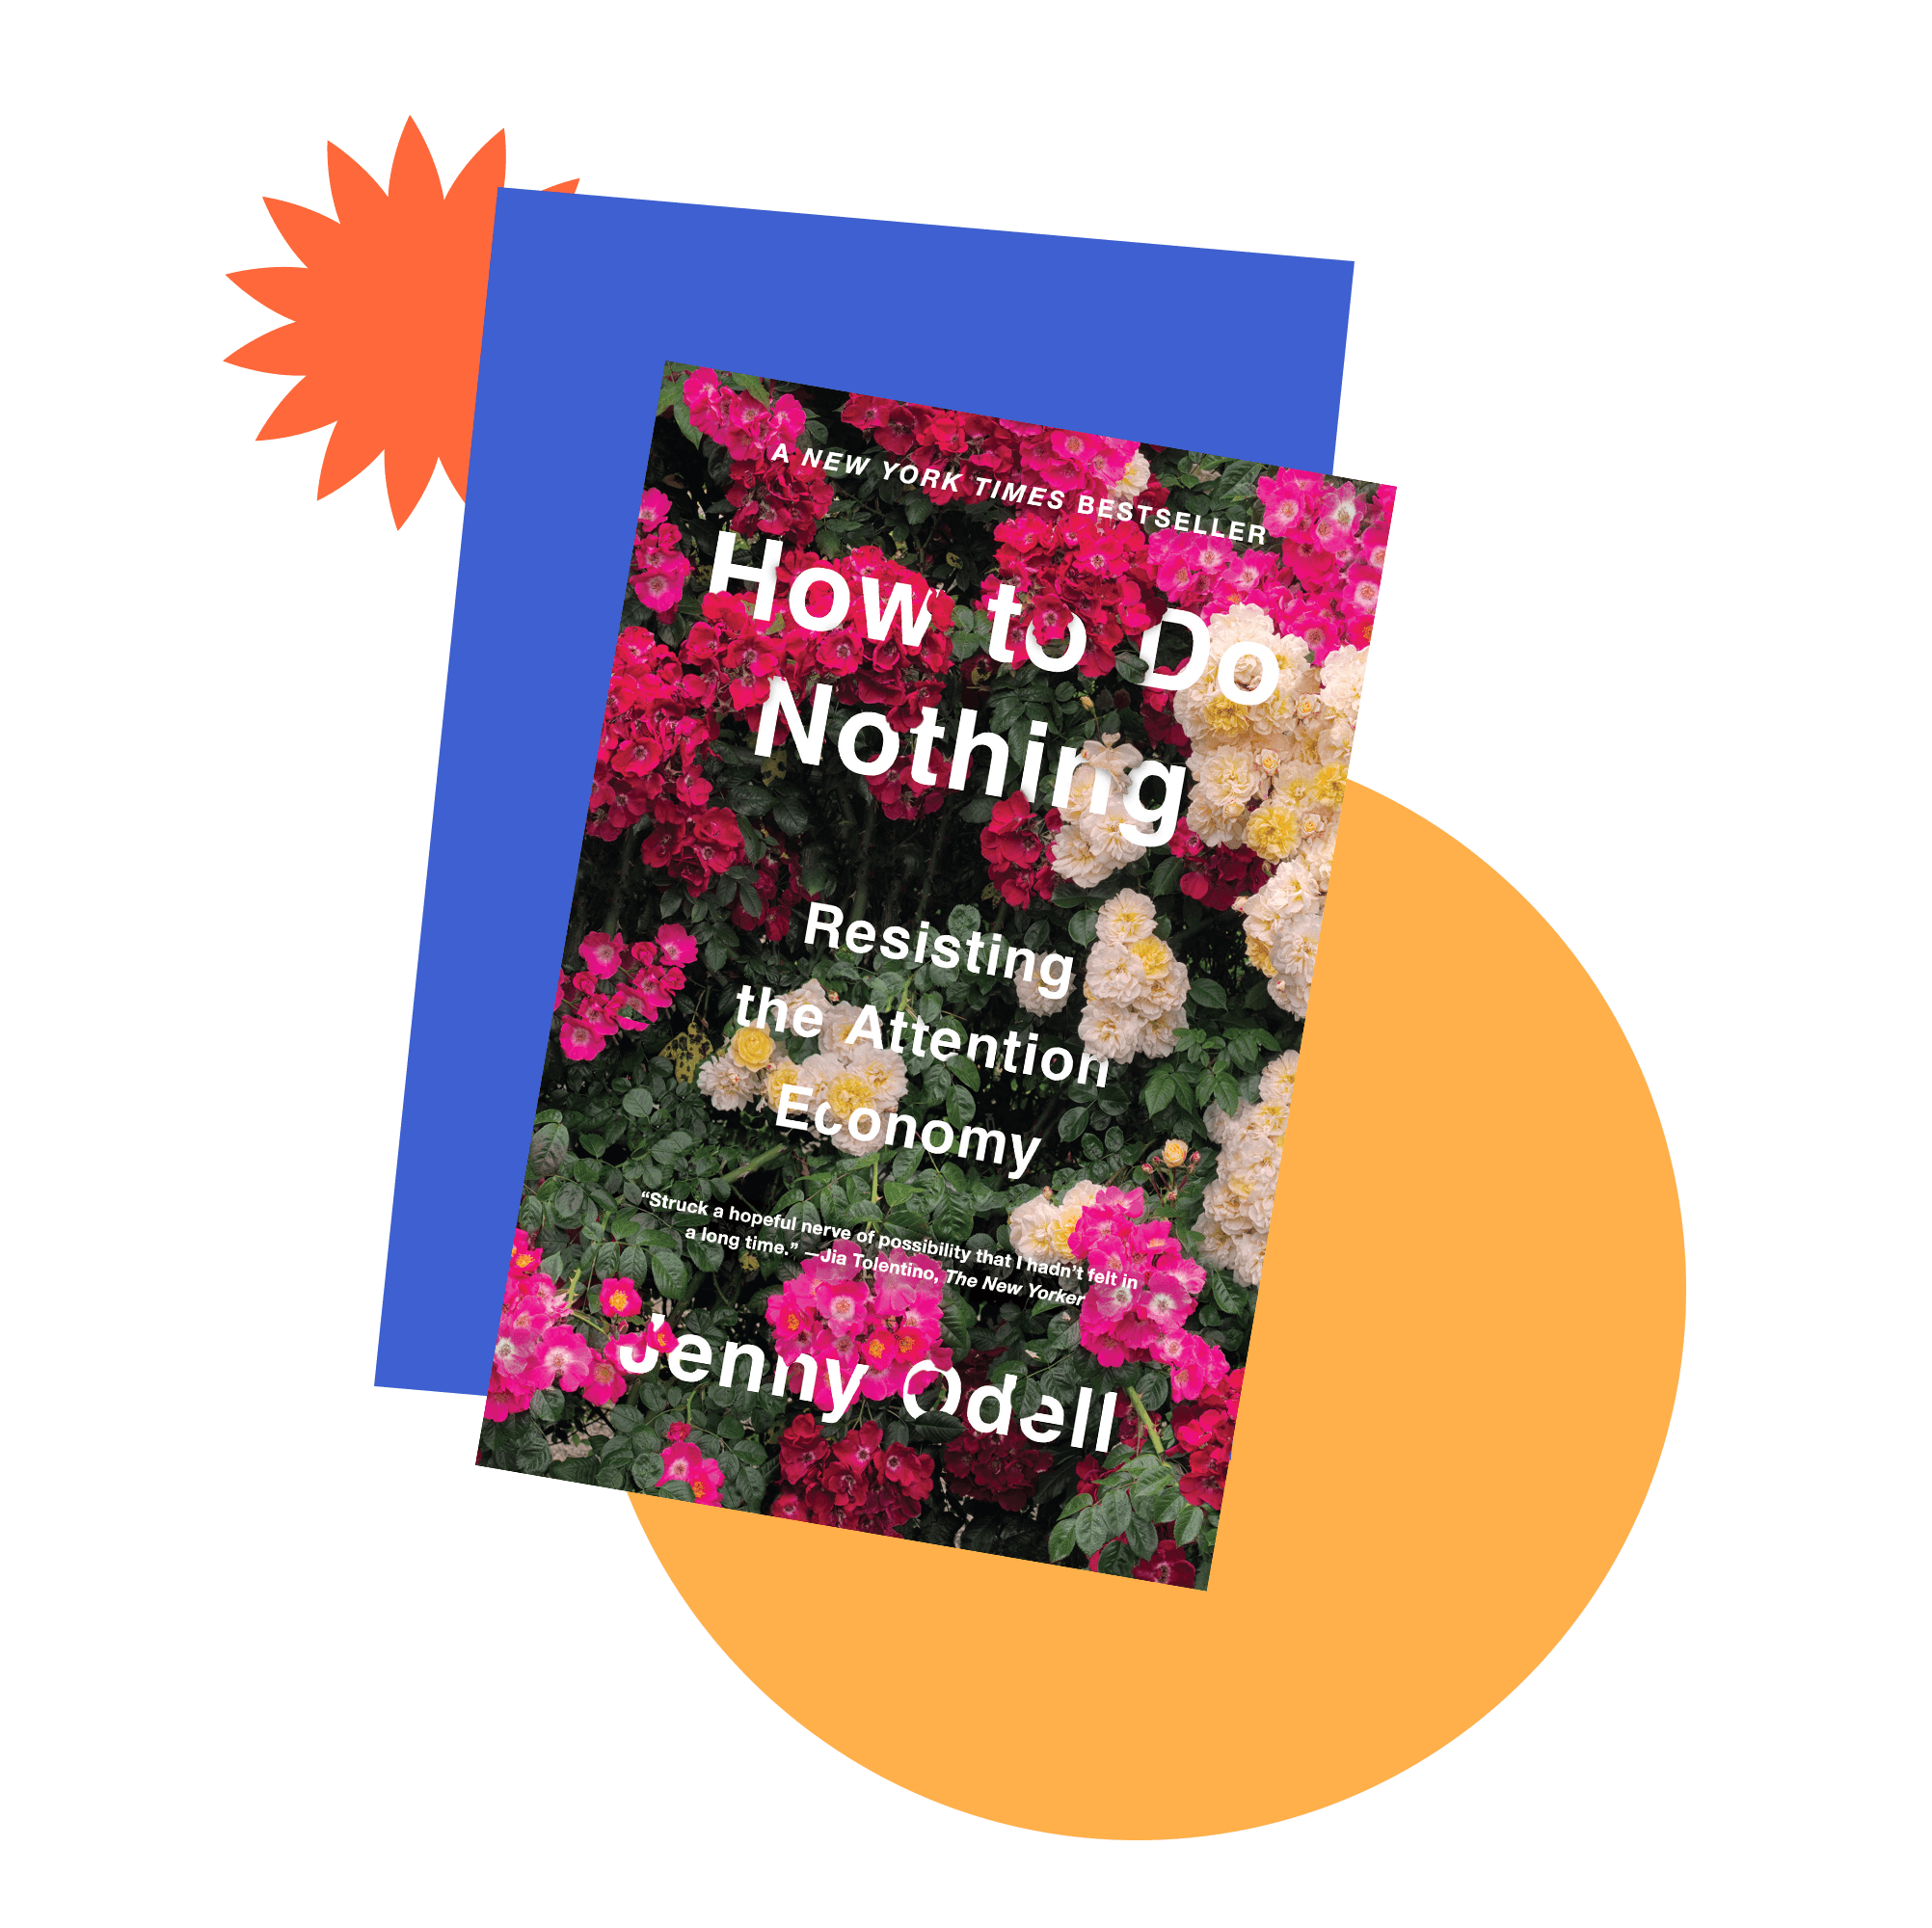 Book jacket cover for How to Do Nothing: Resisting the Attention Economy by Jenny Odell